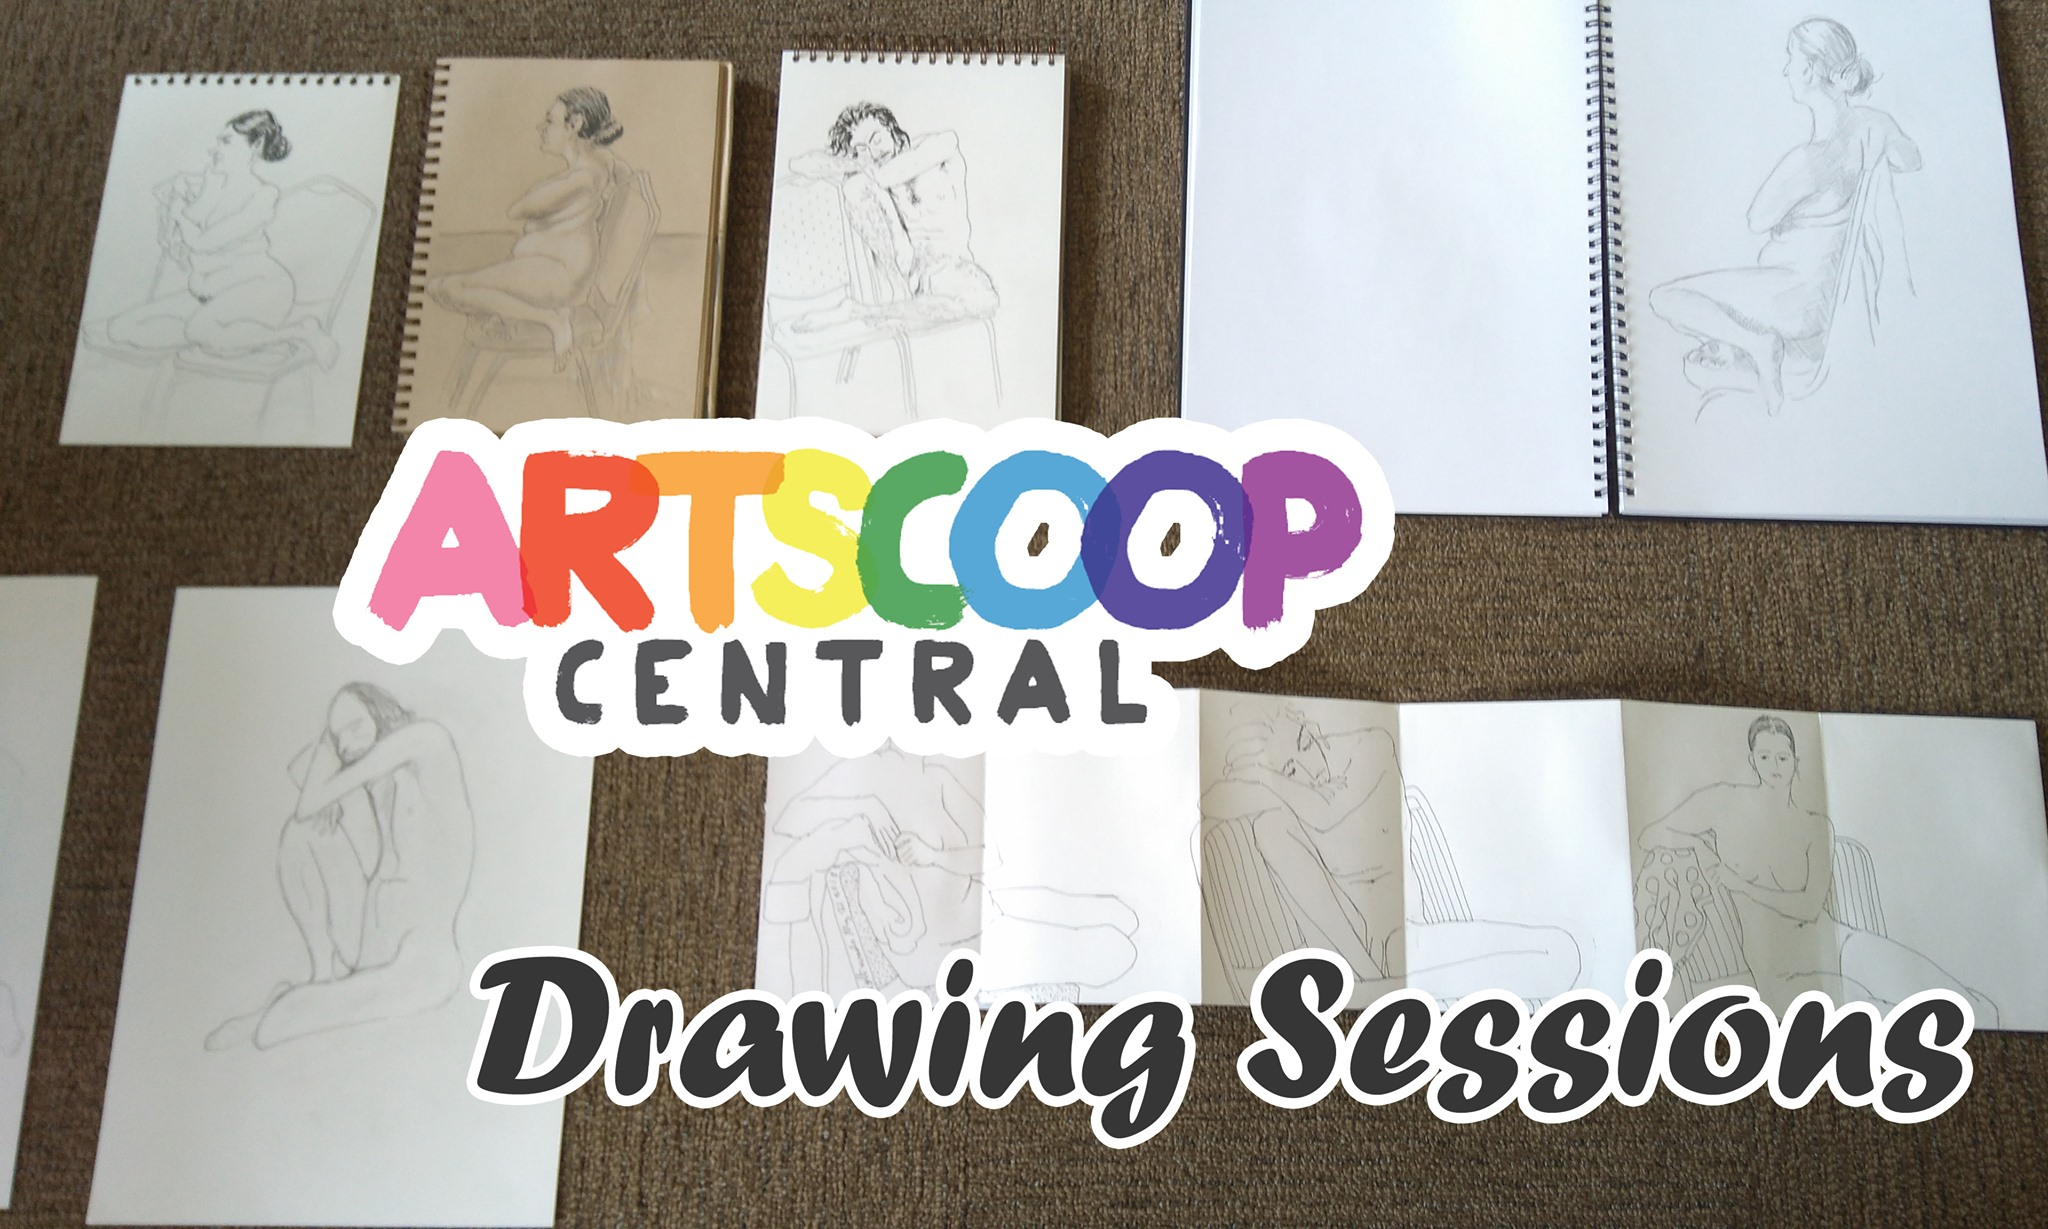 Drawing Sessions